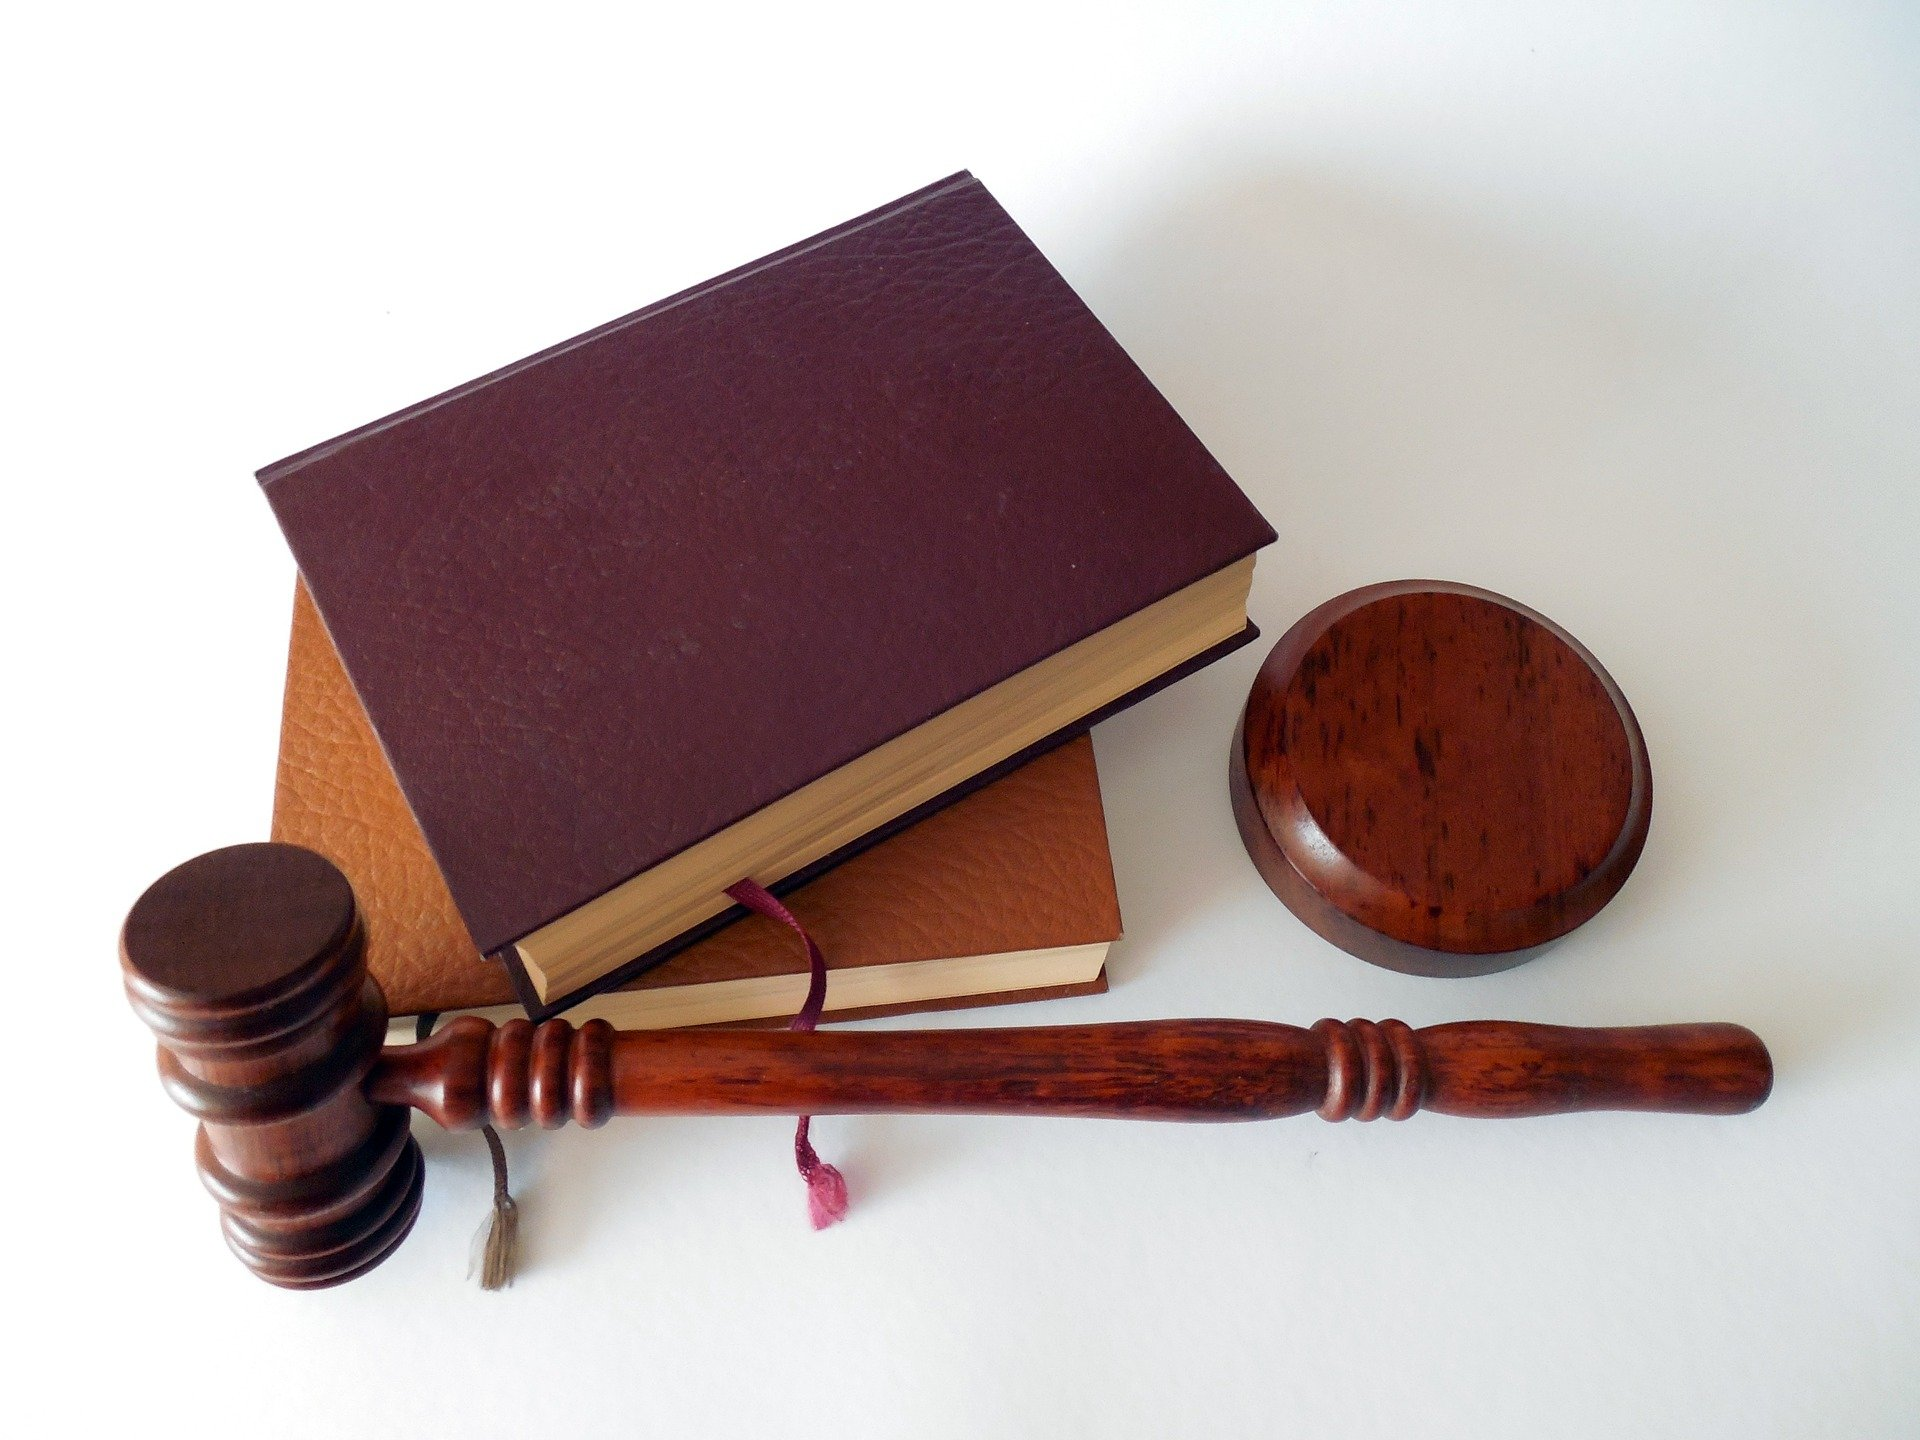 How we Select the Best Personal Injury Lawyer for you